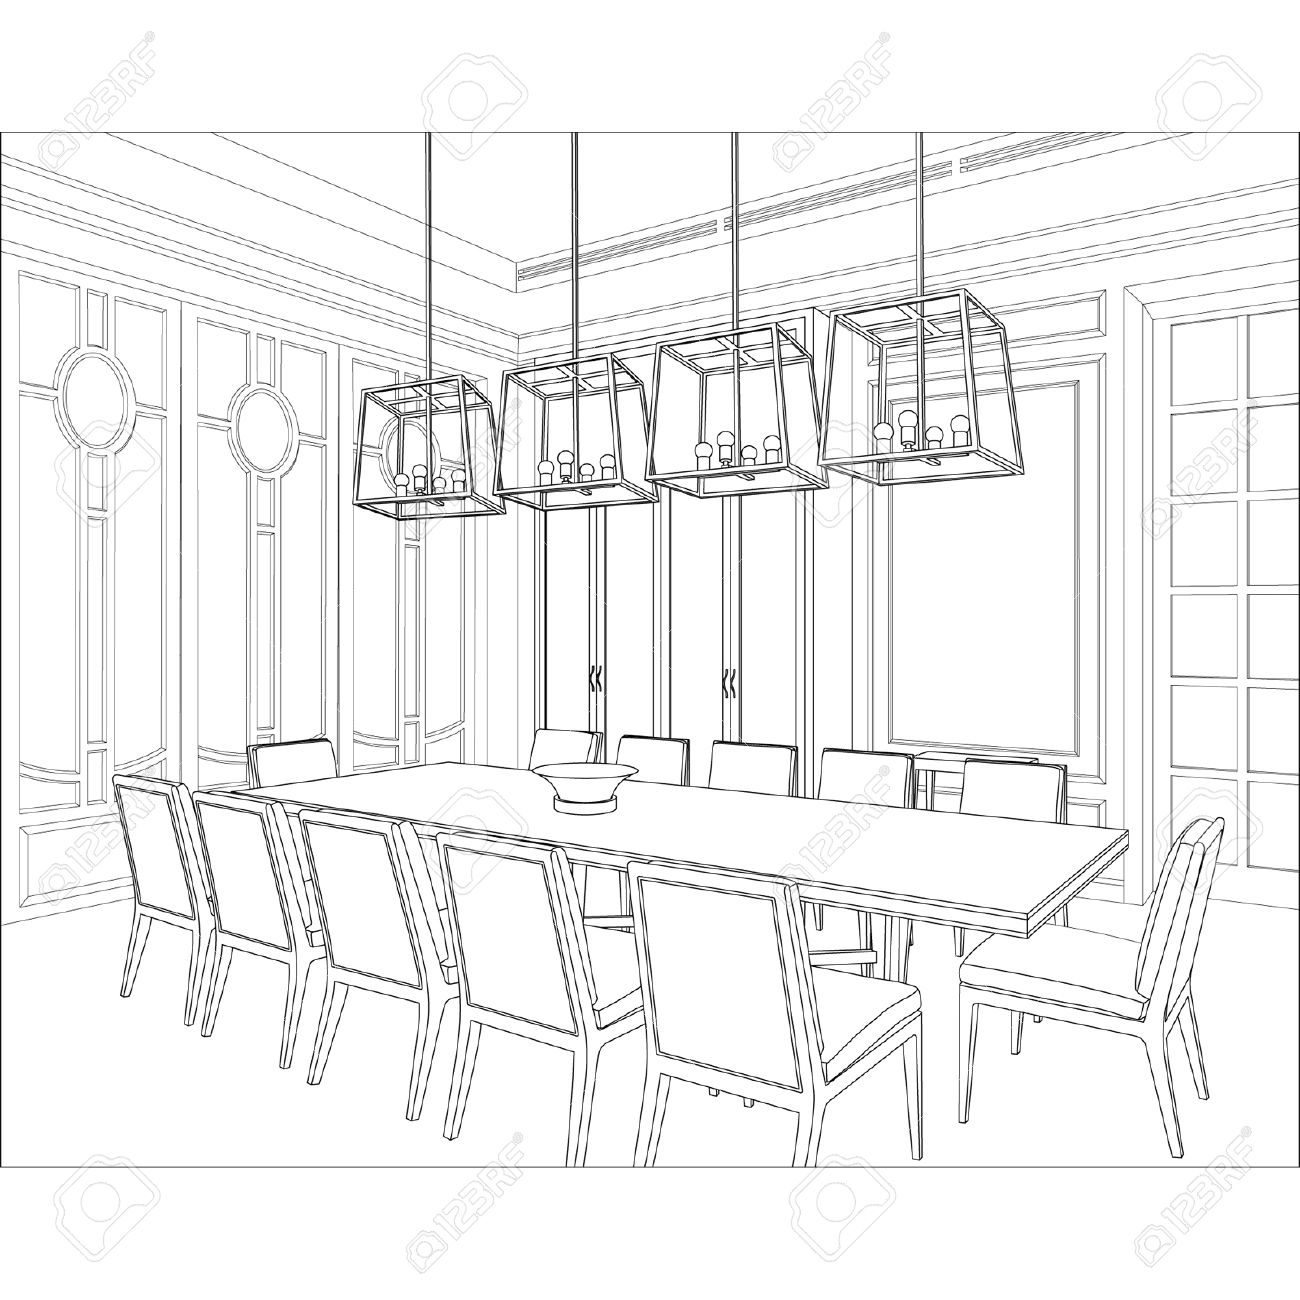 Dining room perspective drawing - Editable Vector Illustration Of An Outline Sketch Of A Interior 3d Graphical Drawing Interior Stock Vector